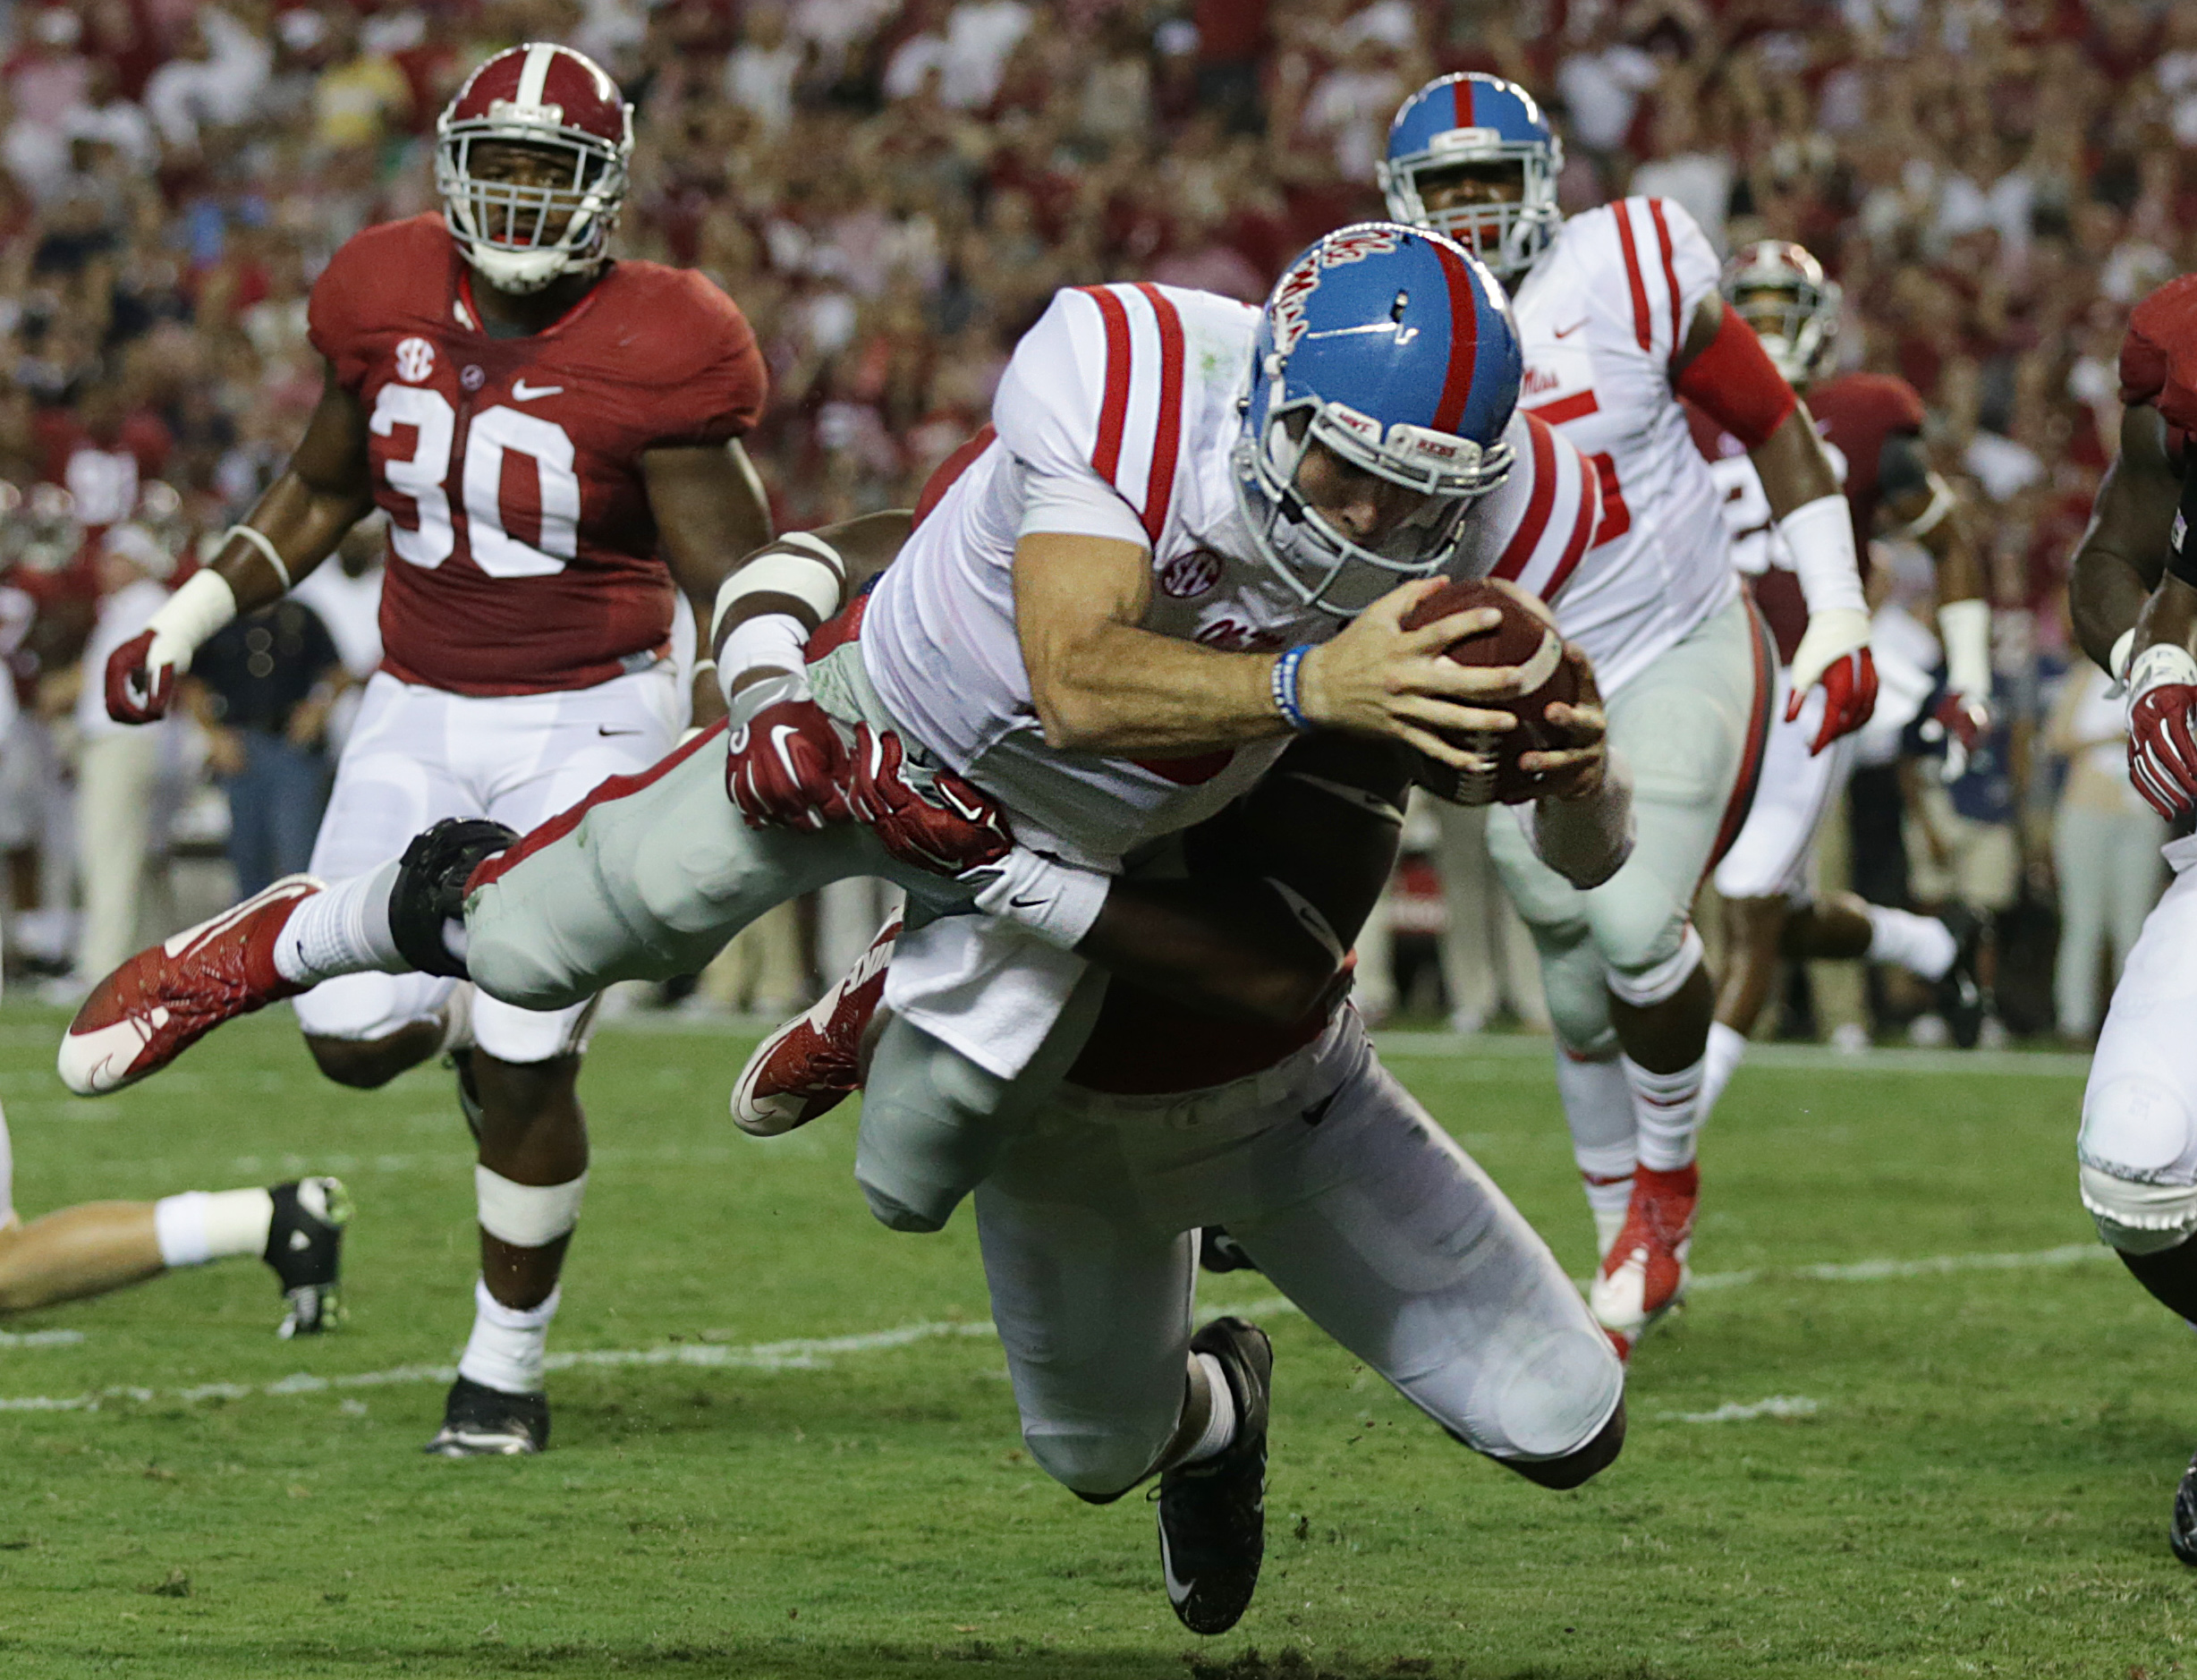 FILE - In this Sept. 19, 2015, file photo, Mississippi quarterback Chad Kelly dives in for a touchdown past Alabama linebacker Shaun Hamilton during first half of an NCAA college football game in Tuscaloosa, Ala.  After leading East Mississippi Community